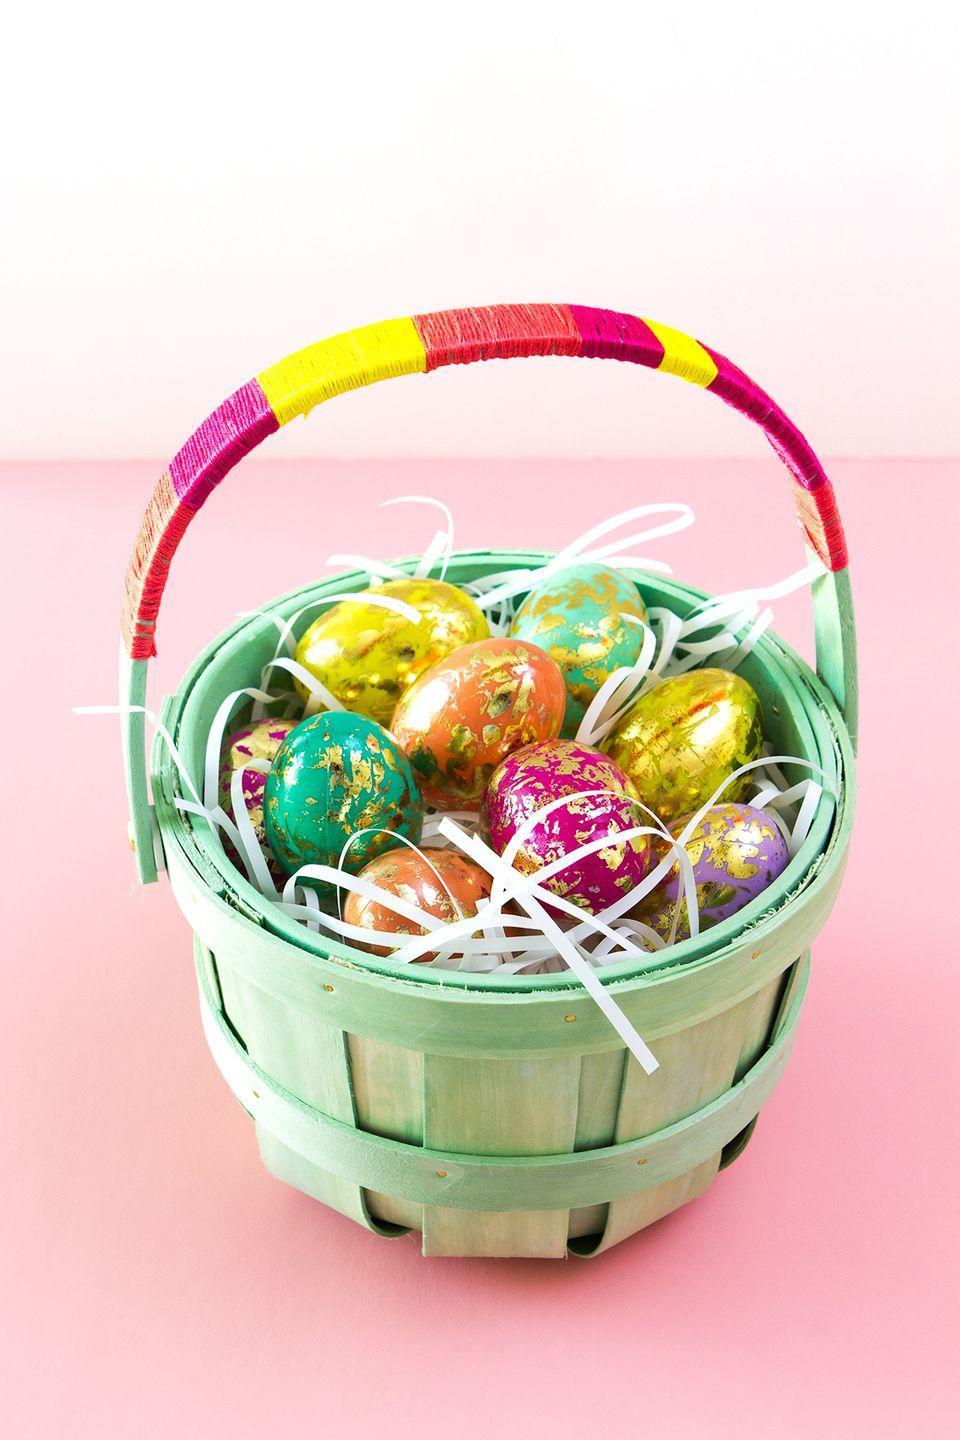 "<p>To create a cool color-blocked look, simply wrap the handle of any basket or pail with vibrant thread. </p><p>Get the tutorial at <a href=""https://sarahhearts.com/diy-color-block-easter-basket/"" rel=""nofollow noopener"" target=""_blank"" data-ylk=""slk:Sarah Hearts."" class=""link rapid-noclick-resp"">Sarah Hearts.</a></p><p><a class=""link rapid-noclick-resp"" href=""https://www.amazon.com/Caydo-Embroidery-Friendship-Bracelets-Rainbow/dp/B07568BVWP?tag=syn-yahoo-20&ascsubtag=%5Bartid%7C10072.g.30506642%5Bsrc%7Cyahoo-us"" rel=""nofollow noopener"" target=""_blank"" data-ylk=""slk:SHOP EMBROIDERY THREAD"">SHOP EMBROIDERY THREAD</a></p>"